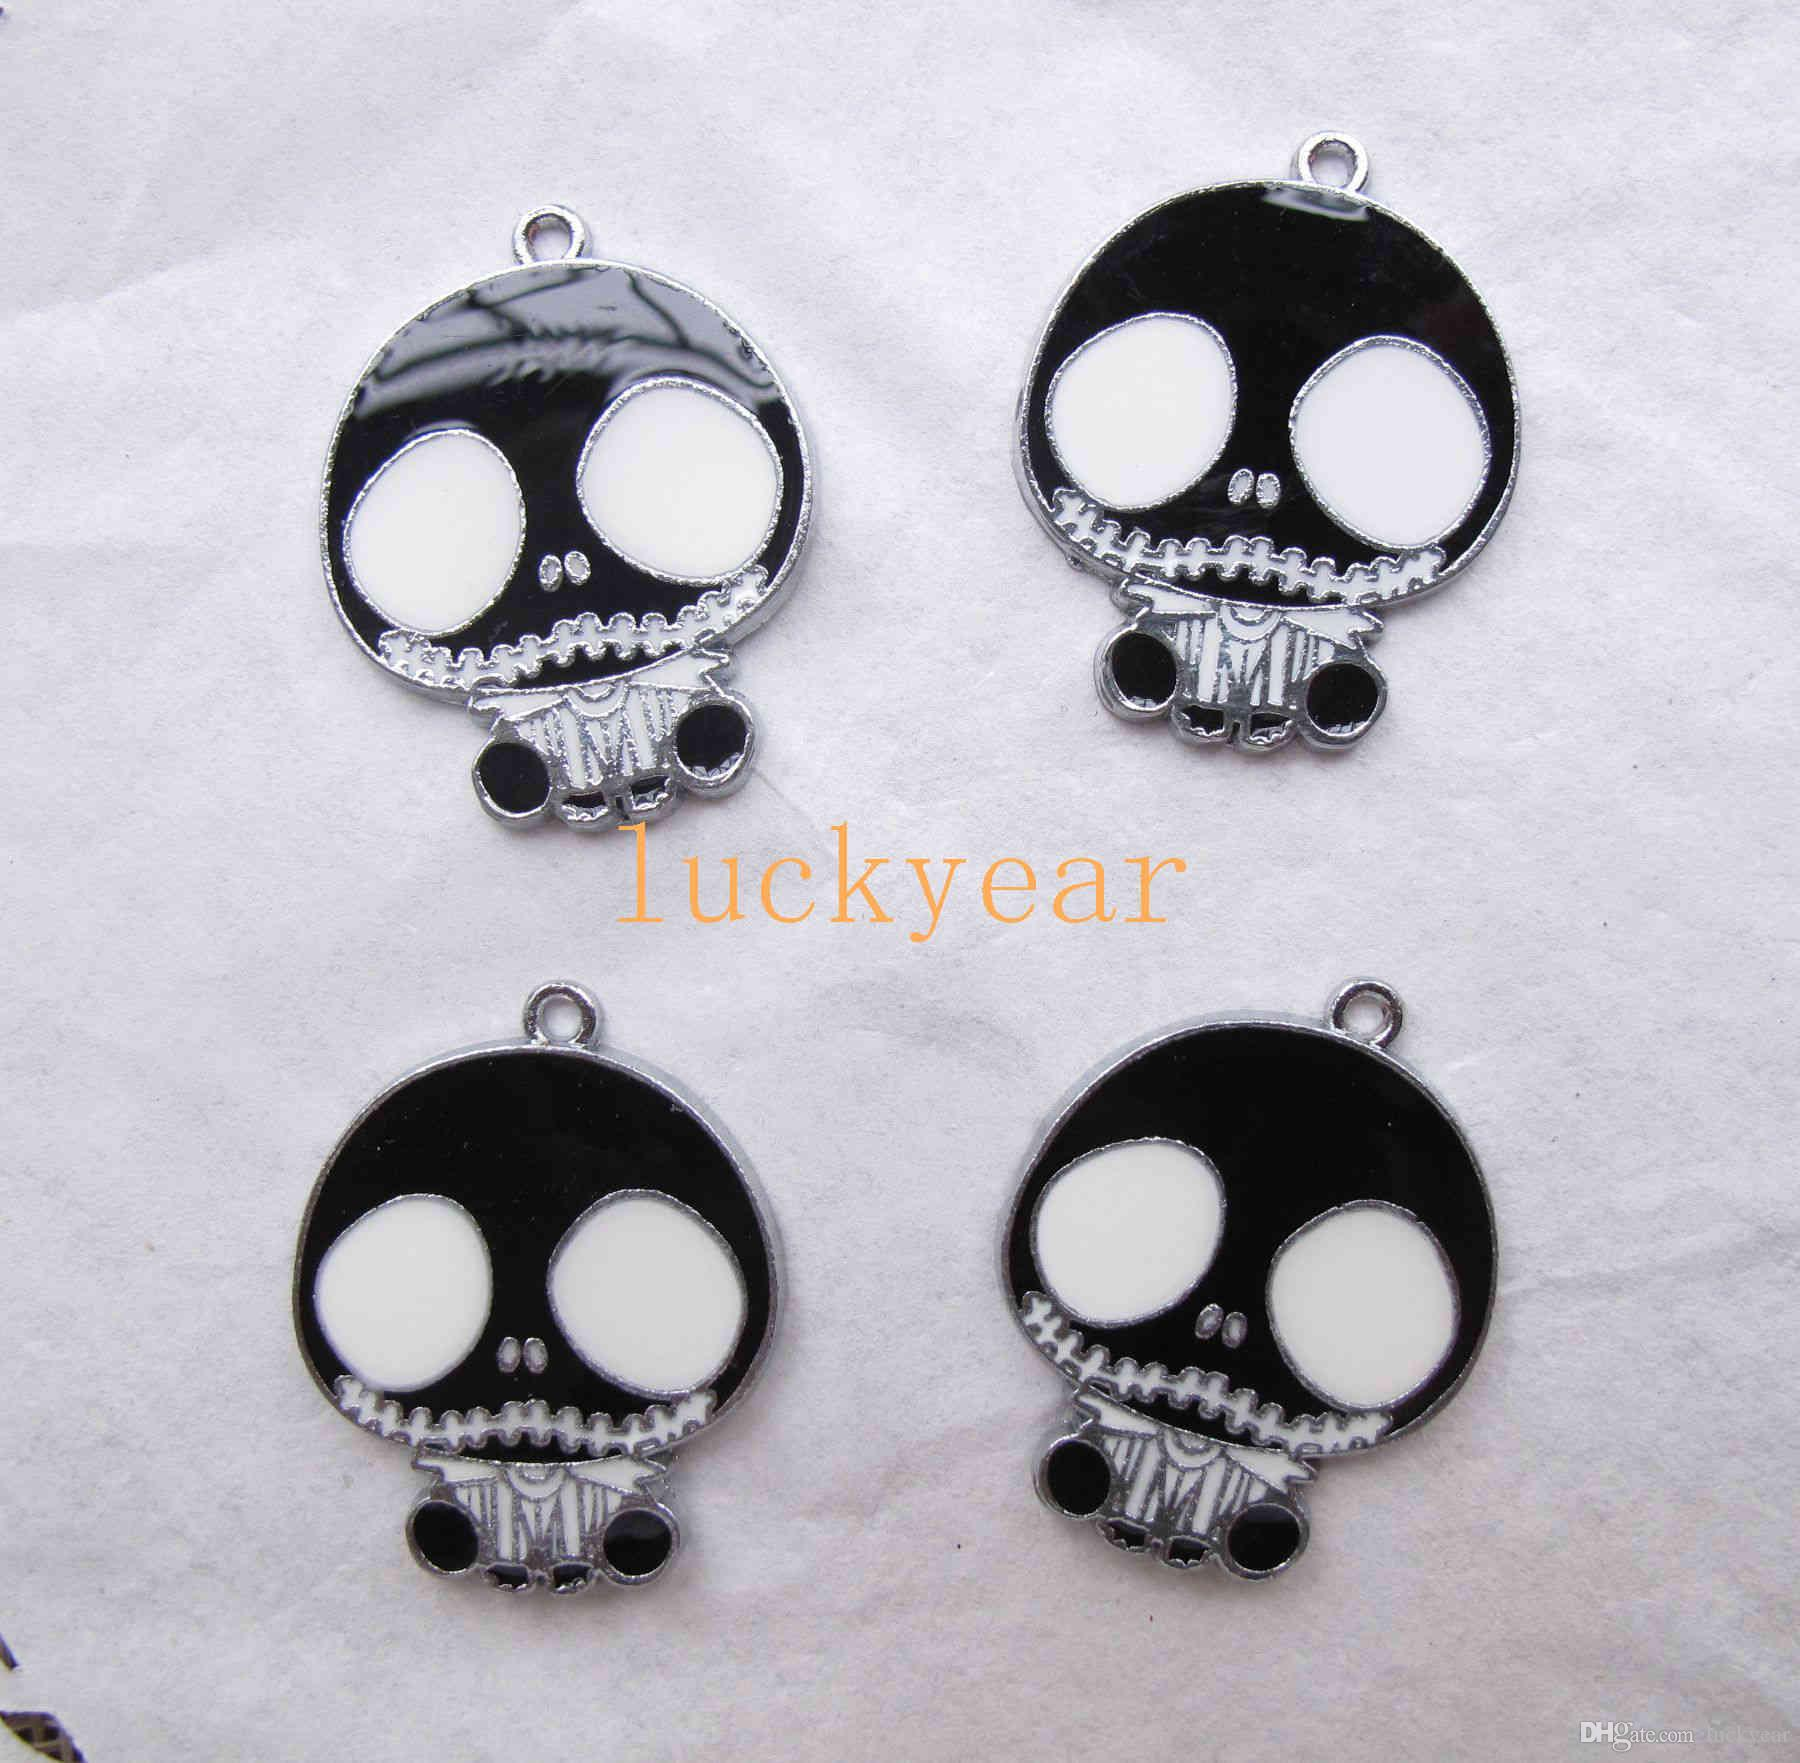 New The Nightmare Before Christmas DIY Jewelry Making Metal Charm Pendant Jewelry Making Party Gifts B68